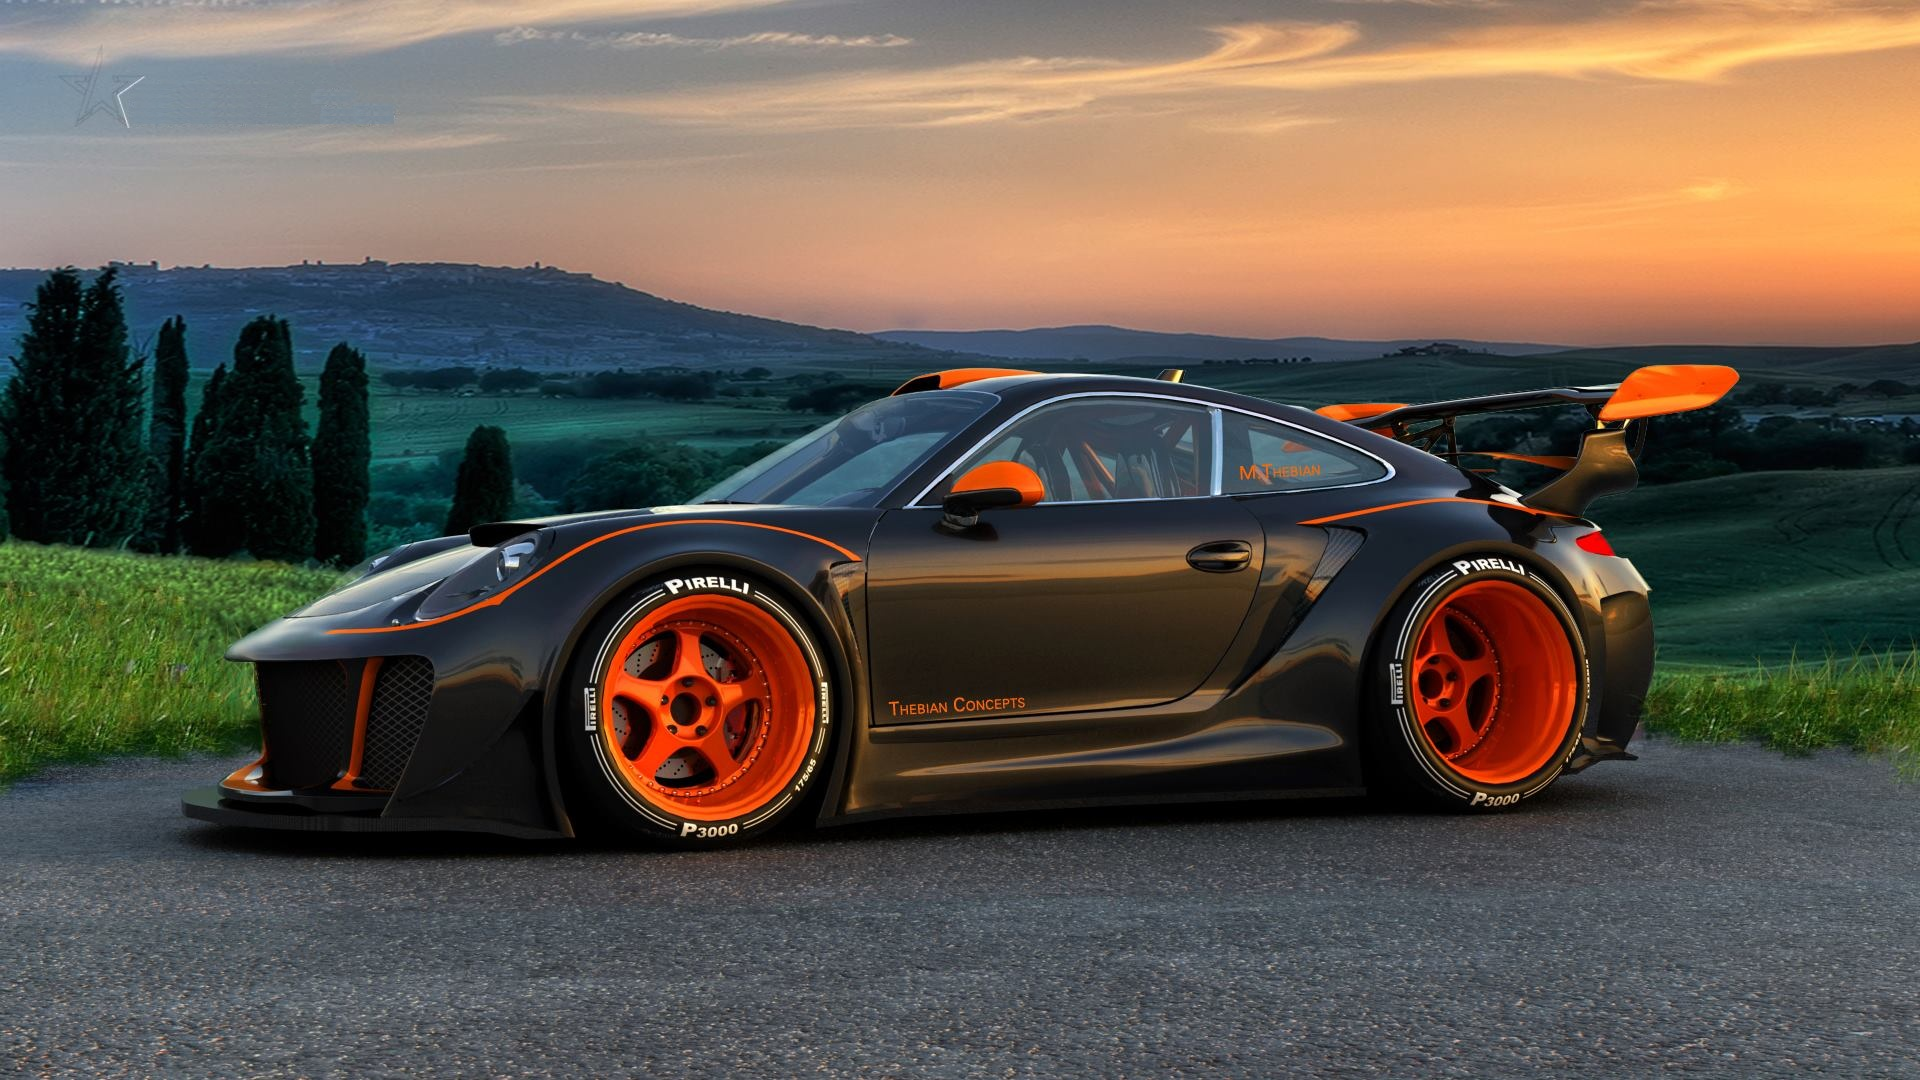 Porsche 911 Car HD 1920x1080 Wallpaper My Site